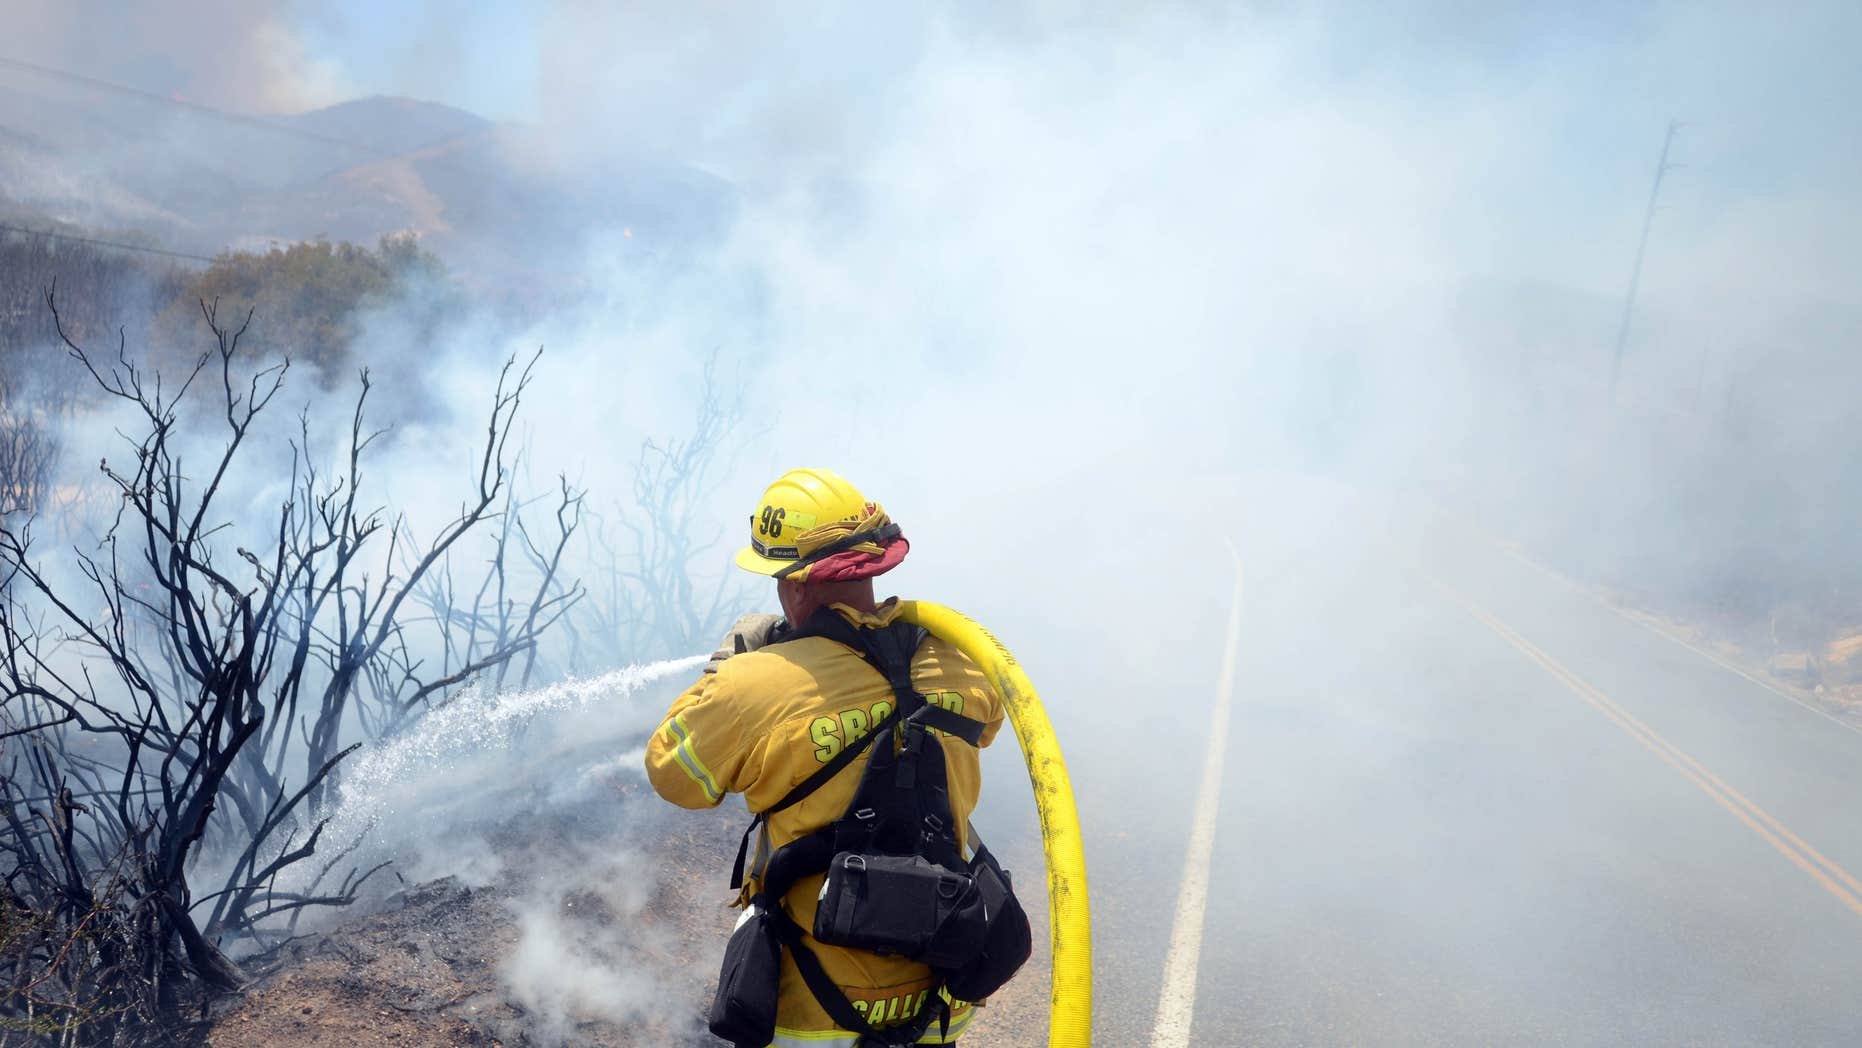 Aug. 8, 2016: San Bernardino County Firefighter Mike Callaway battles flames from a wildfire in Hesperia, Calif.